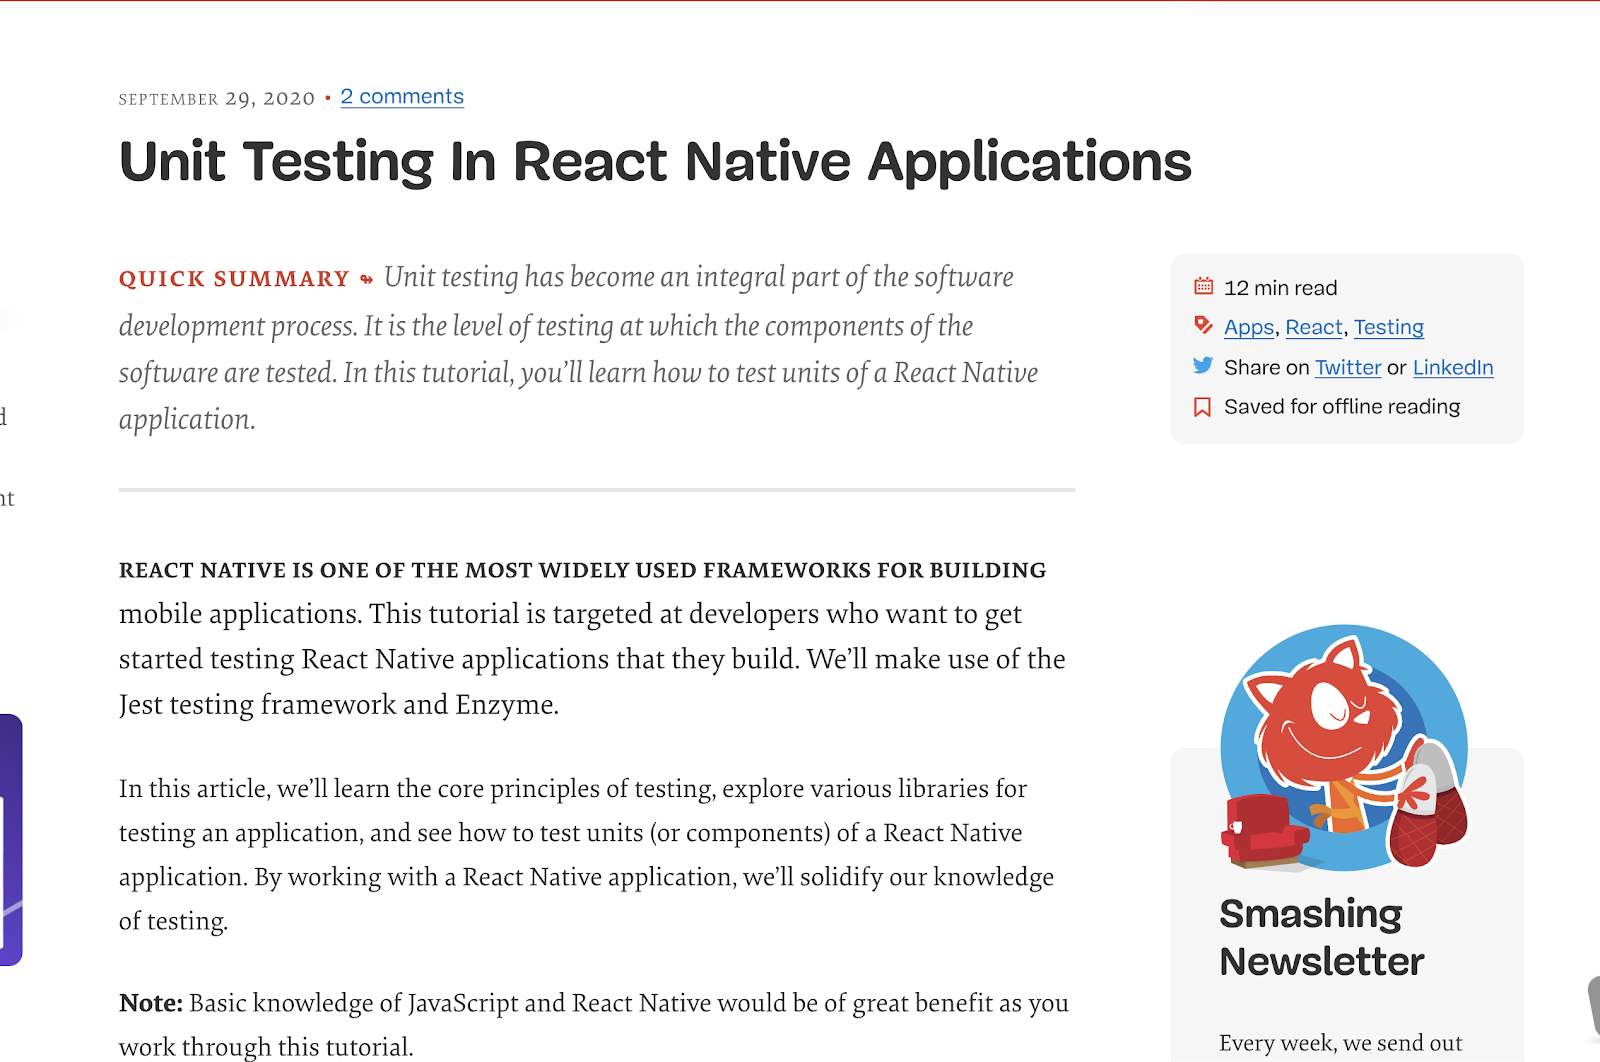 Unit Testing in React Native Applications